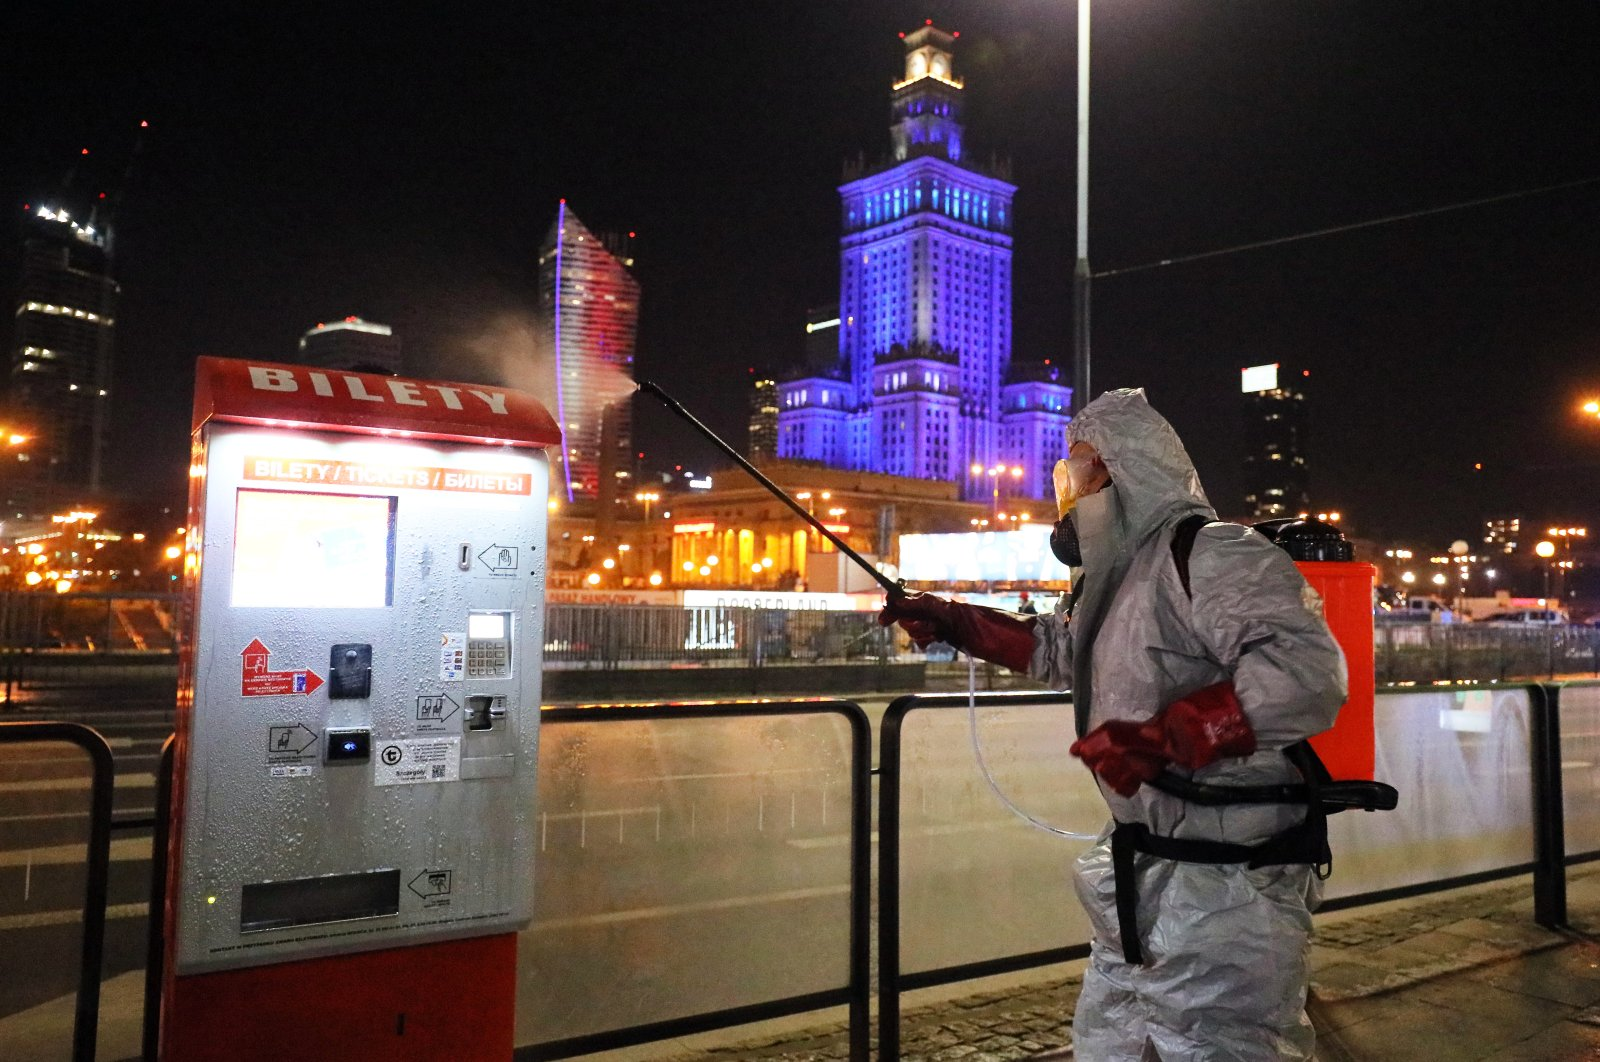 A worker wearing a protective suit sprays disinfectant at a tram station in Warsaw, Poland, April 2, 2020, amid the ongoing coronavirus COVID-19 pandemic. (EPA Photo)